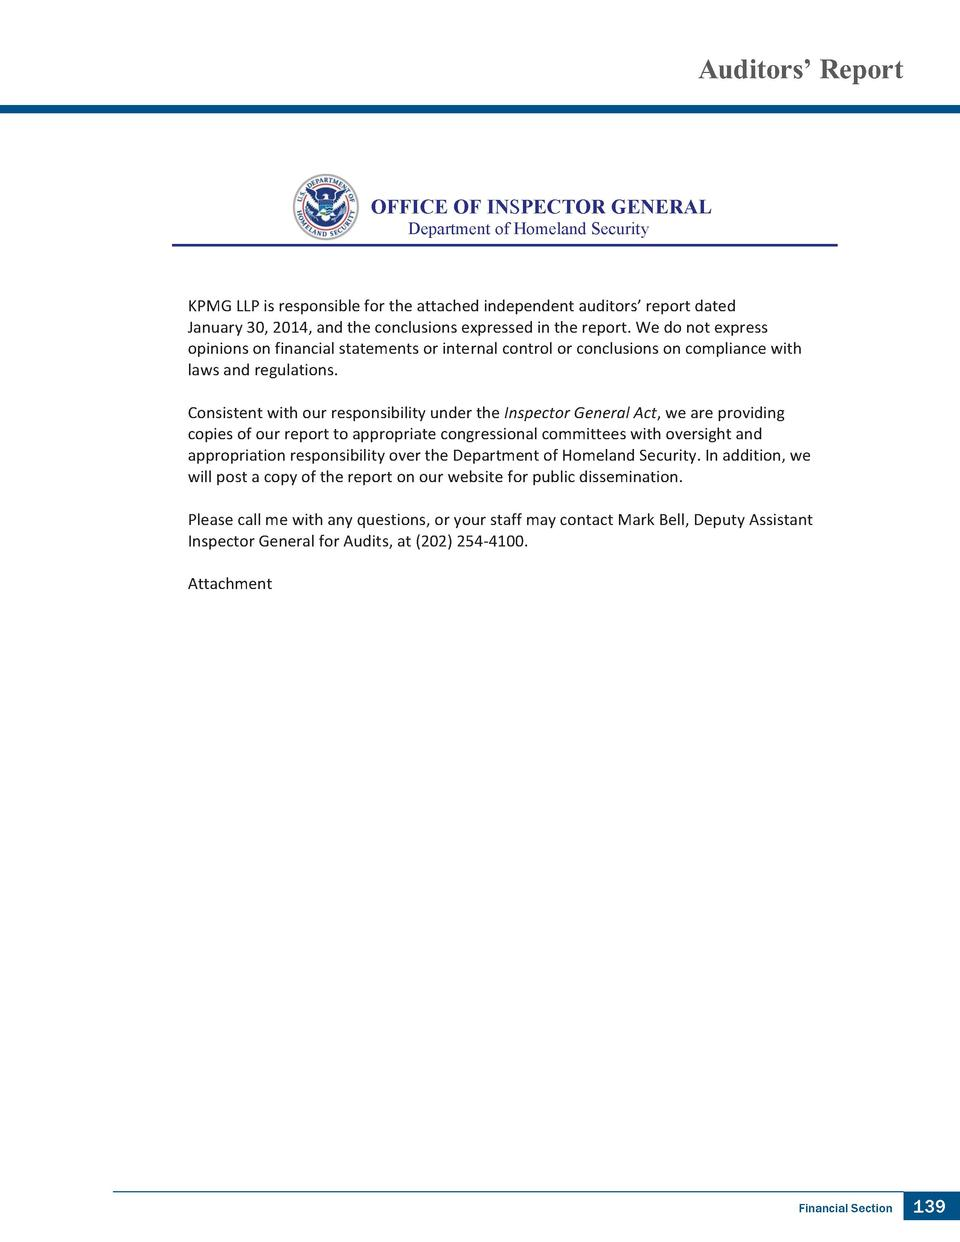 Auditors    Report  OFFICE OF INSPECTOR GENERAL Department of Homeland Security  KPMG LLP is responsible for the attached ...